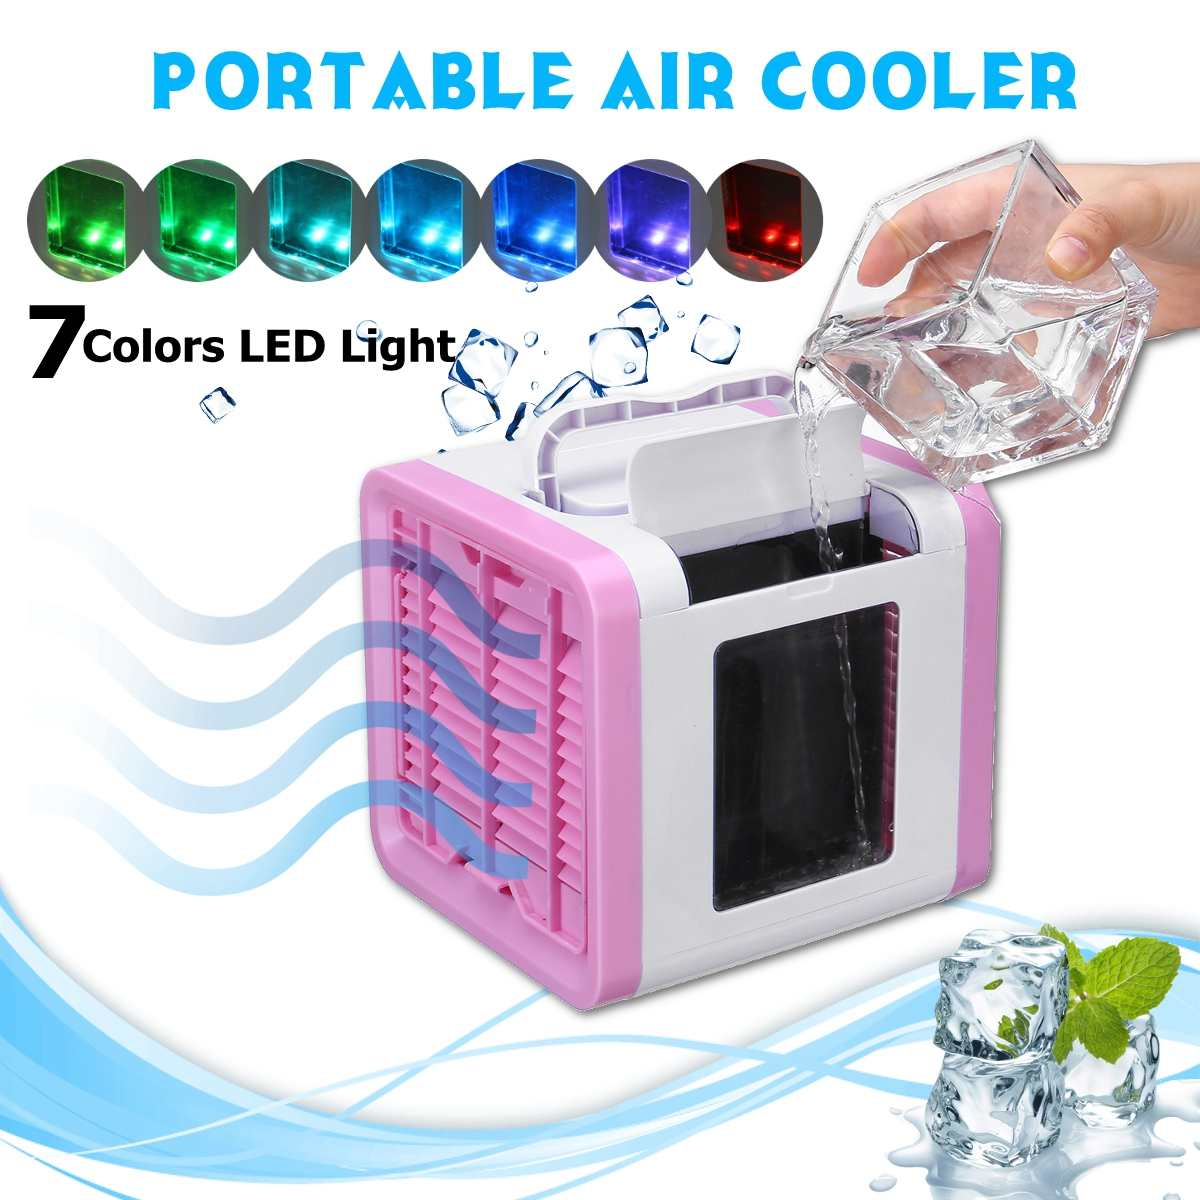 Portable USB Mini Air Conditioner Humidifier Purifier 7 Colors Light Desktop Air Cooling Fan Air Cooler Fan for Office HomePortable USB Mini Air Conditioner Humidifier Purifier 7 Colors Light Desktop Air Cooling Fan Air Cooler Fan for Office Home